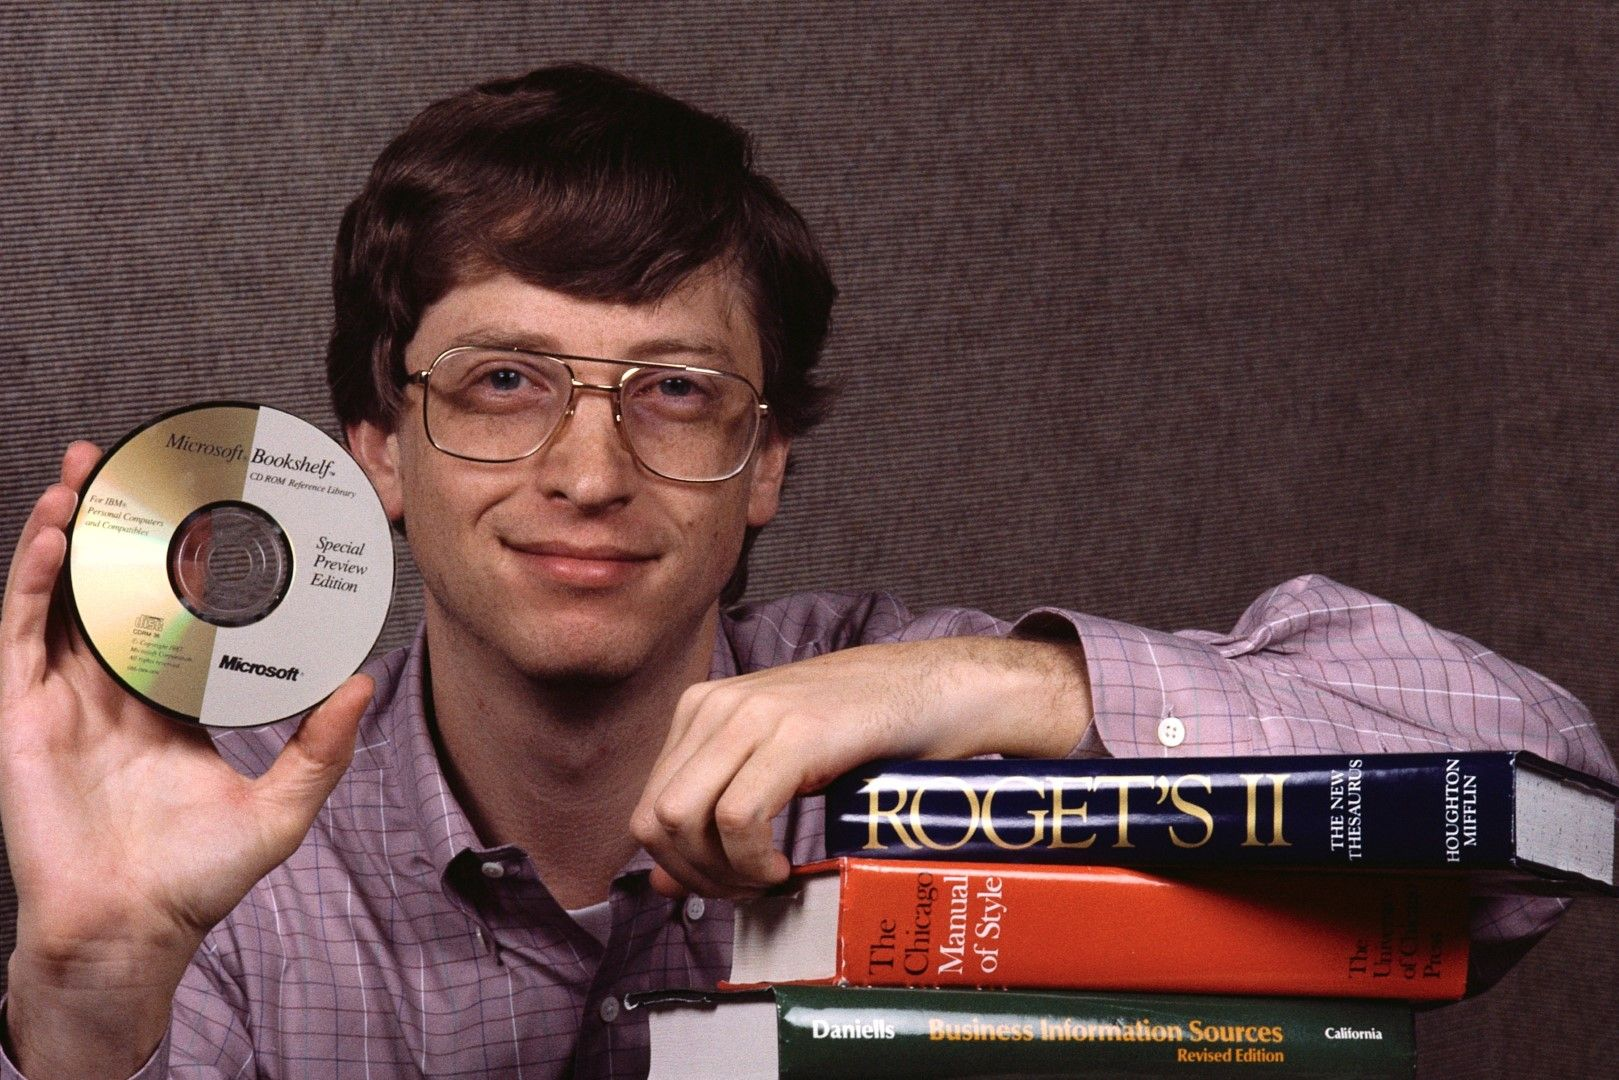 Bill Gates, Microsoft's co-founder, presents one of the earliest examples of commercial CD software.